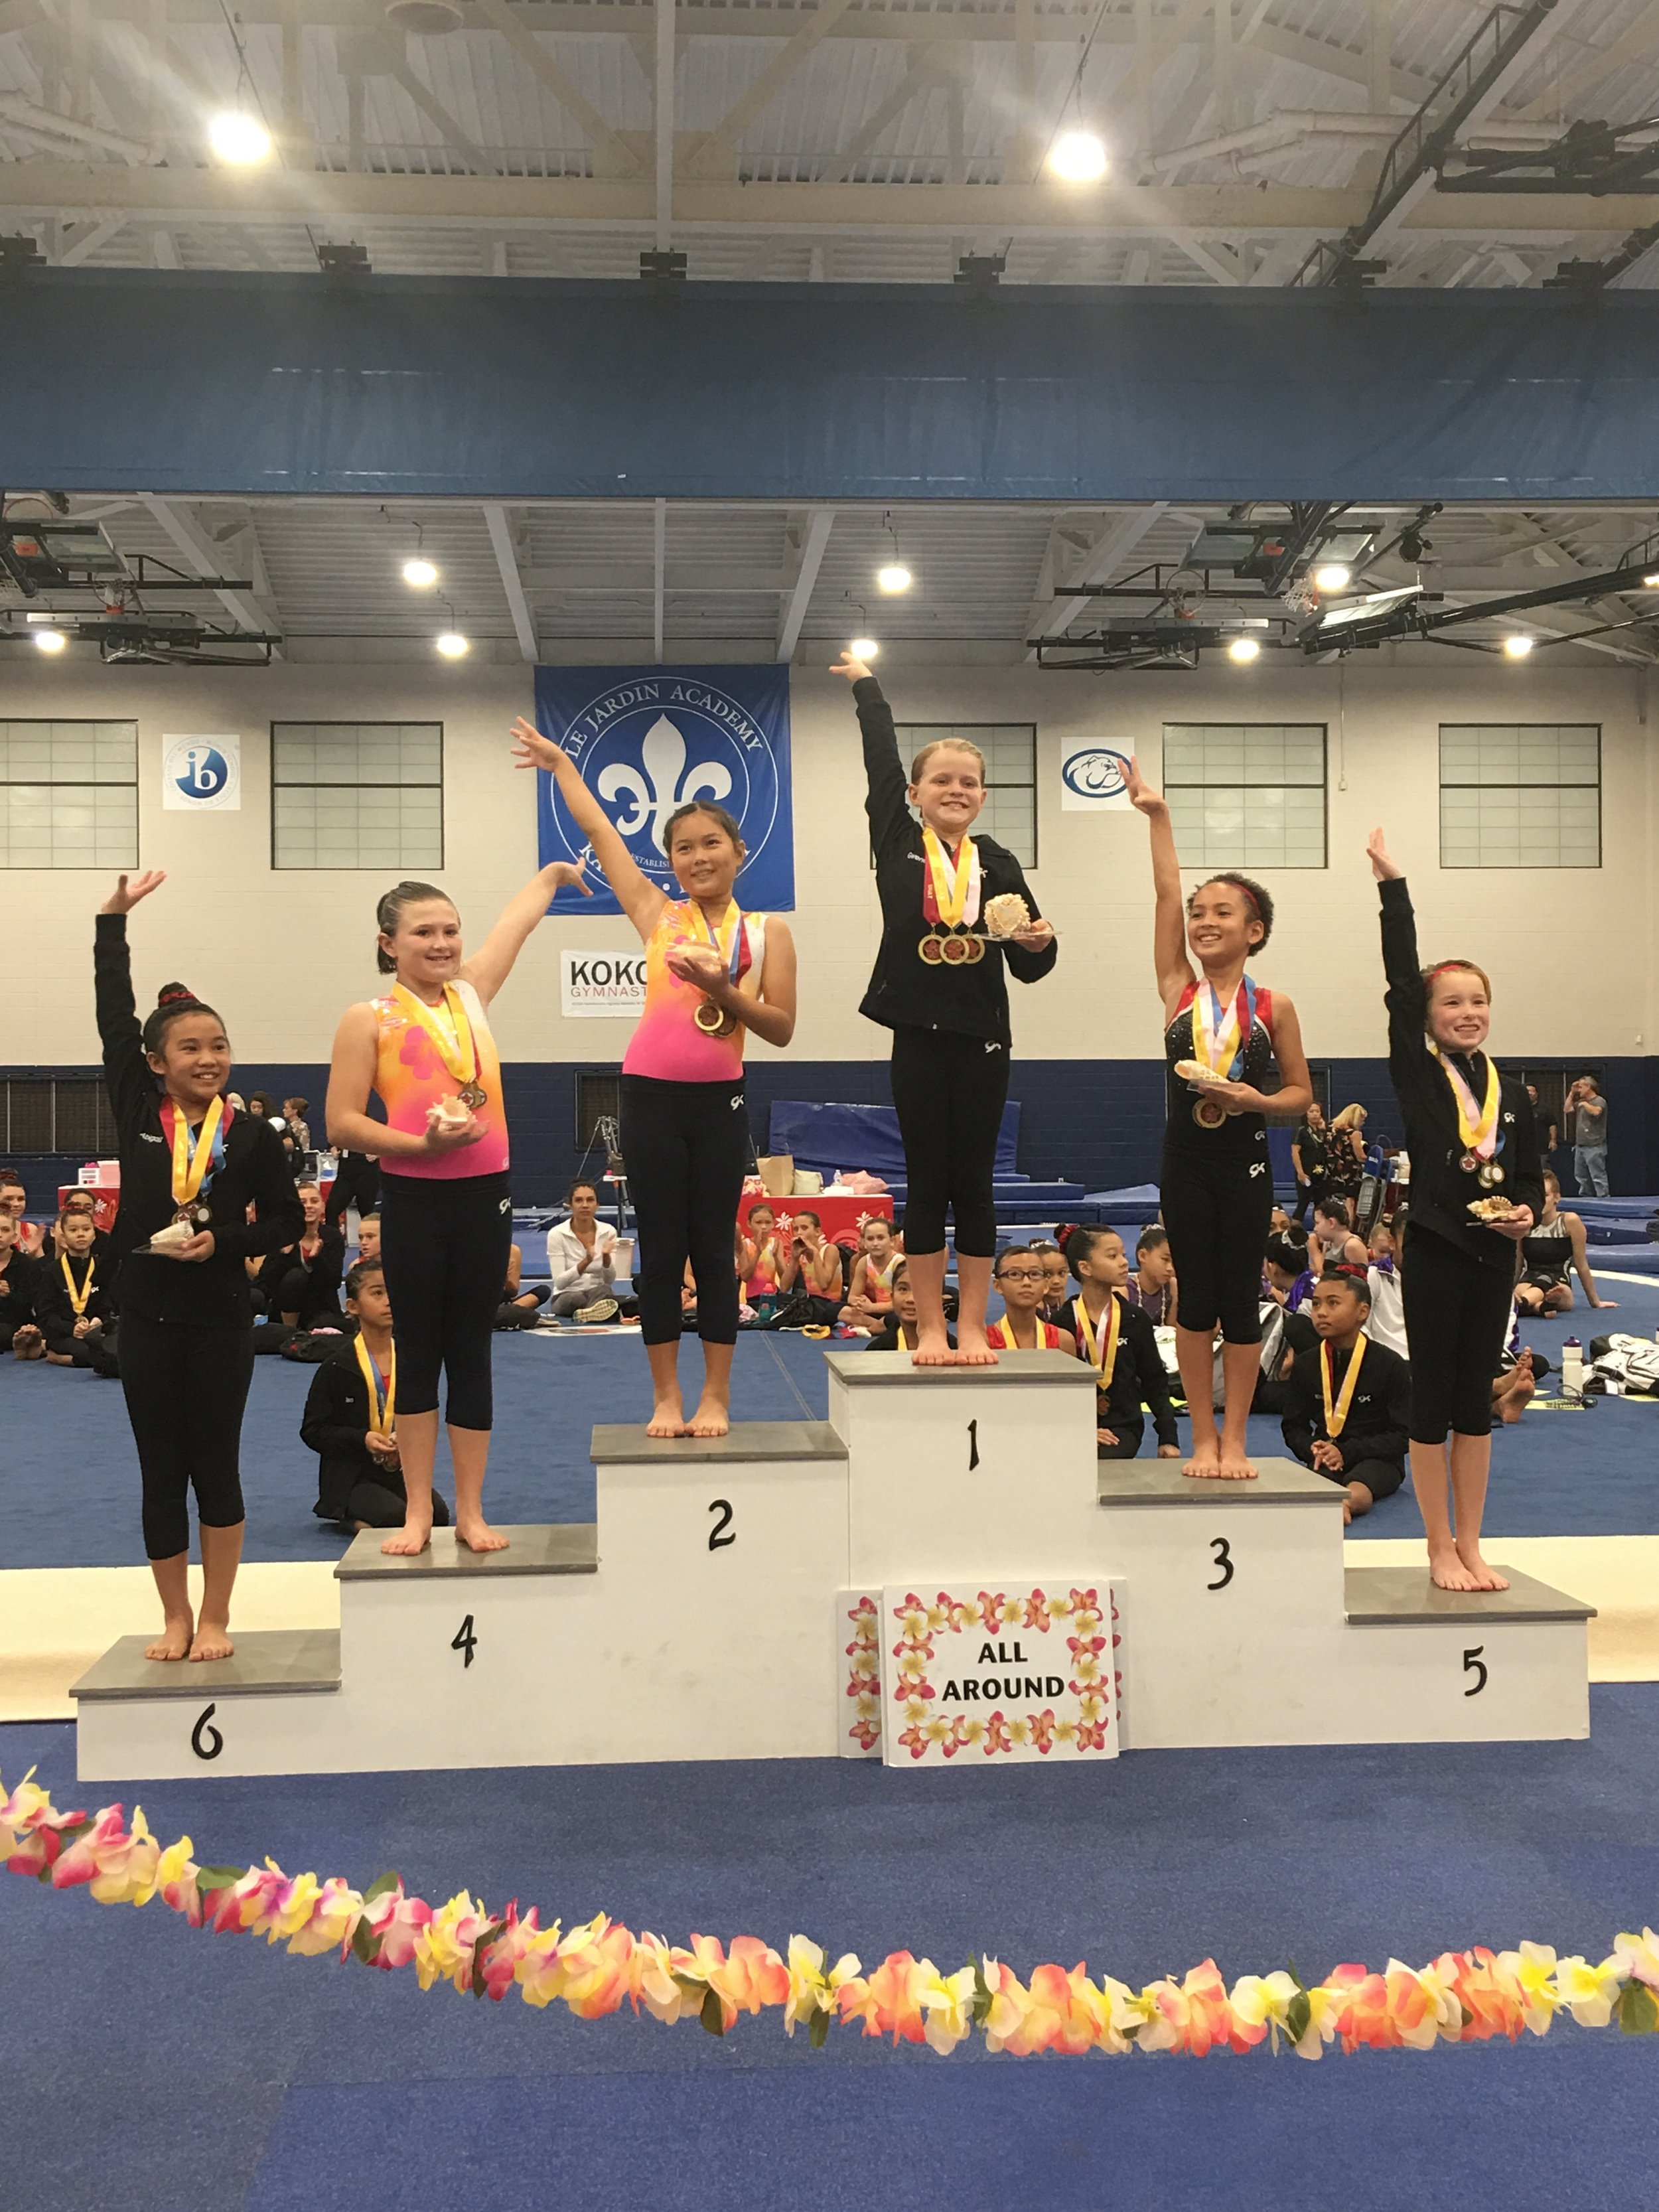 Gwen Jorgensen from our Homeschool Team First Place and All Around Champion